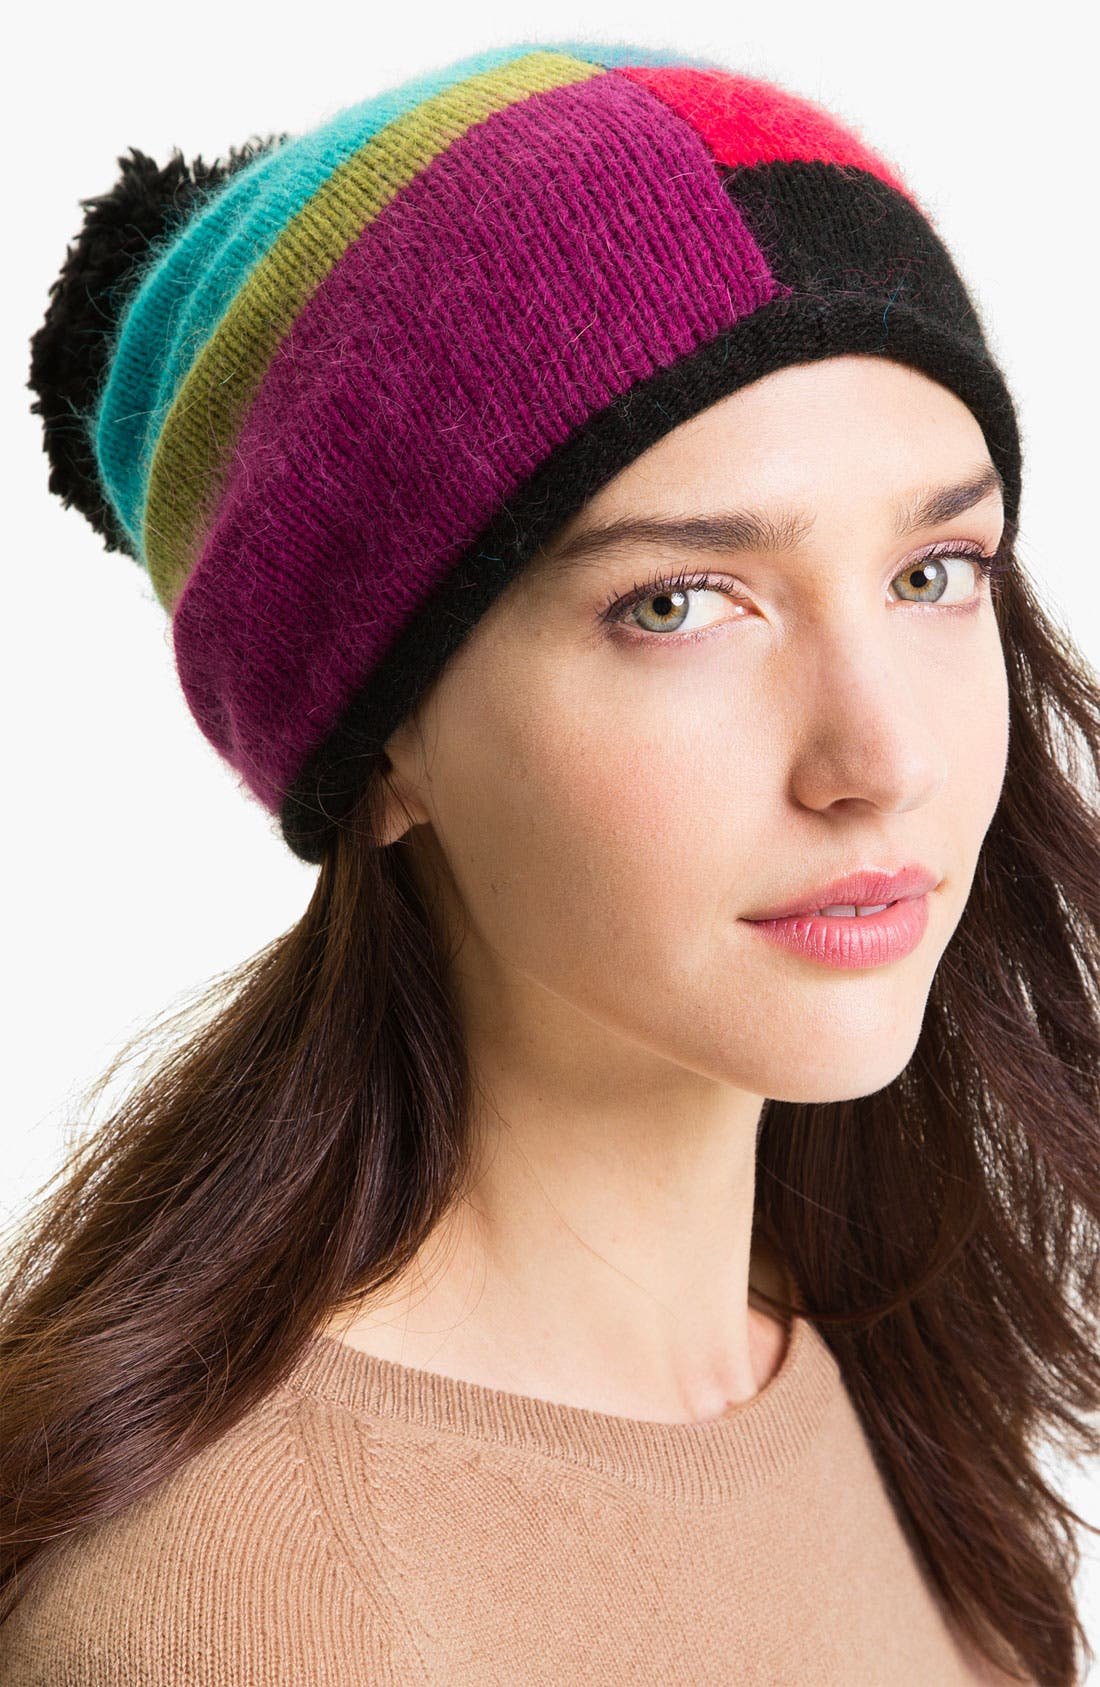 Alternate Image 1 Selected - Laundry by Shelli Segal 'Bauhaus Blocks' Slouchy Beanie